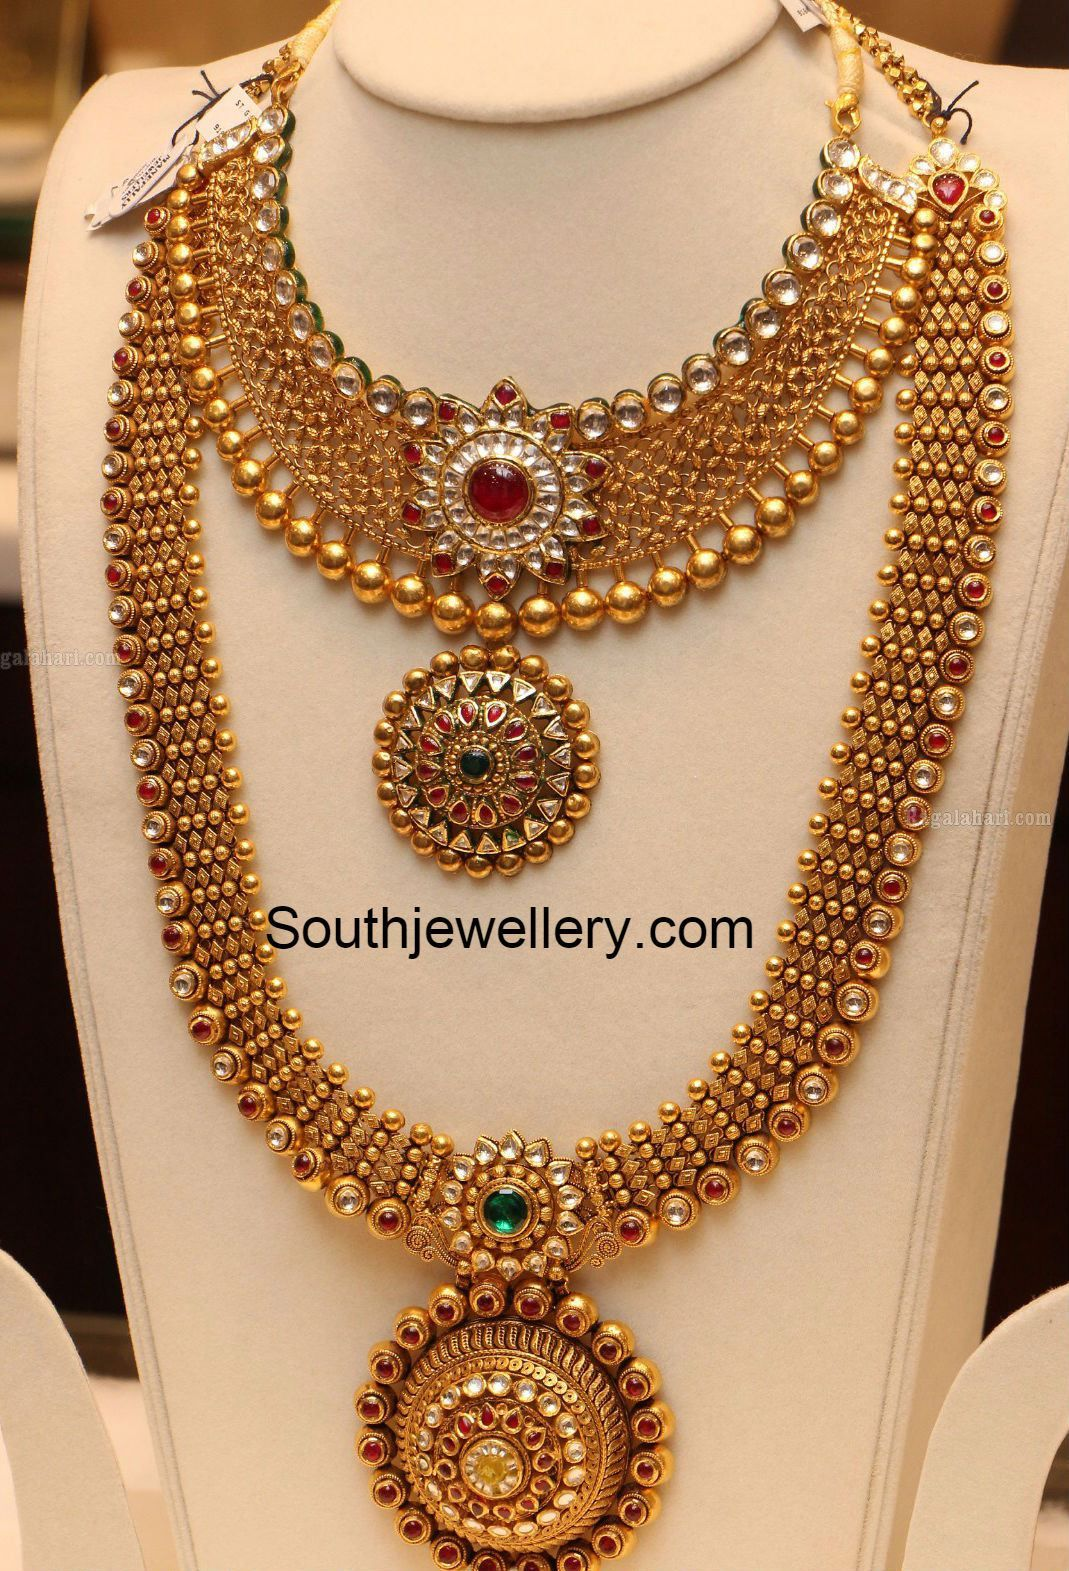 Diamond necklace set by khazana jewellers latest jewellery designs - Find This Pin And More On Jewelry Designs By Ddevisetty